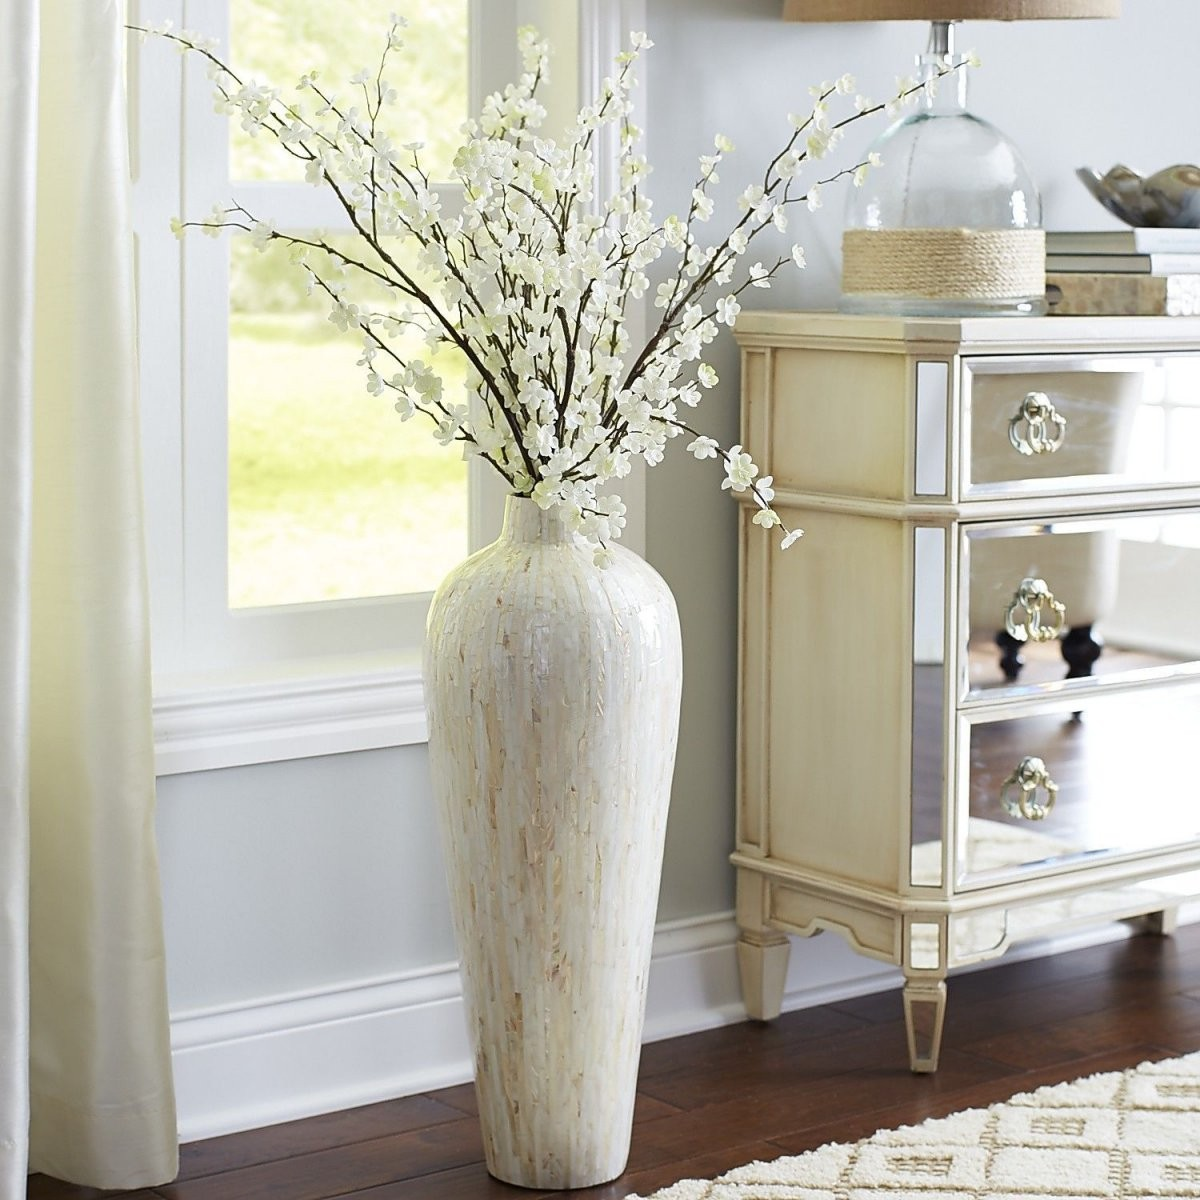 Ivory Motherofpearl Floor Vase  For The Home  Floor Vase Decor von Large White Floor Vase Photo